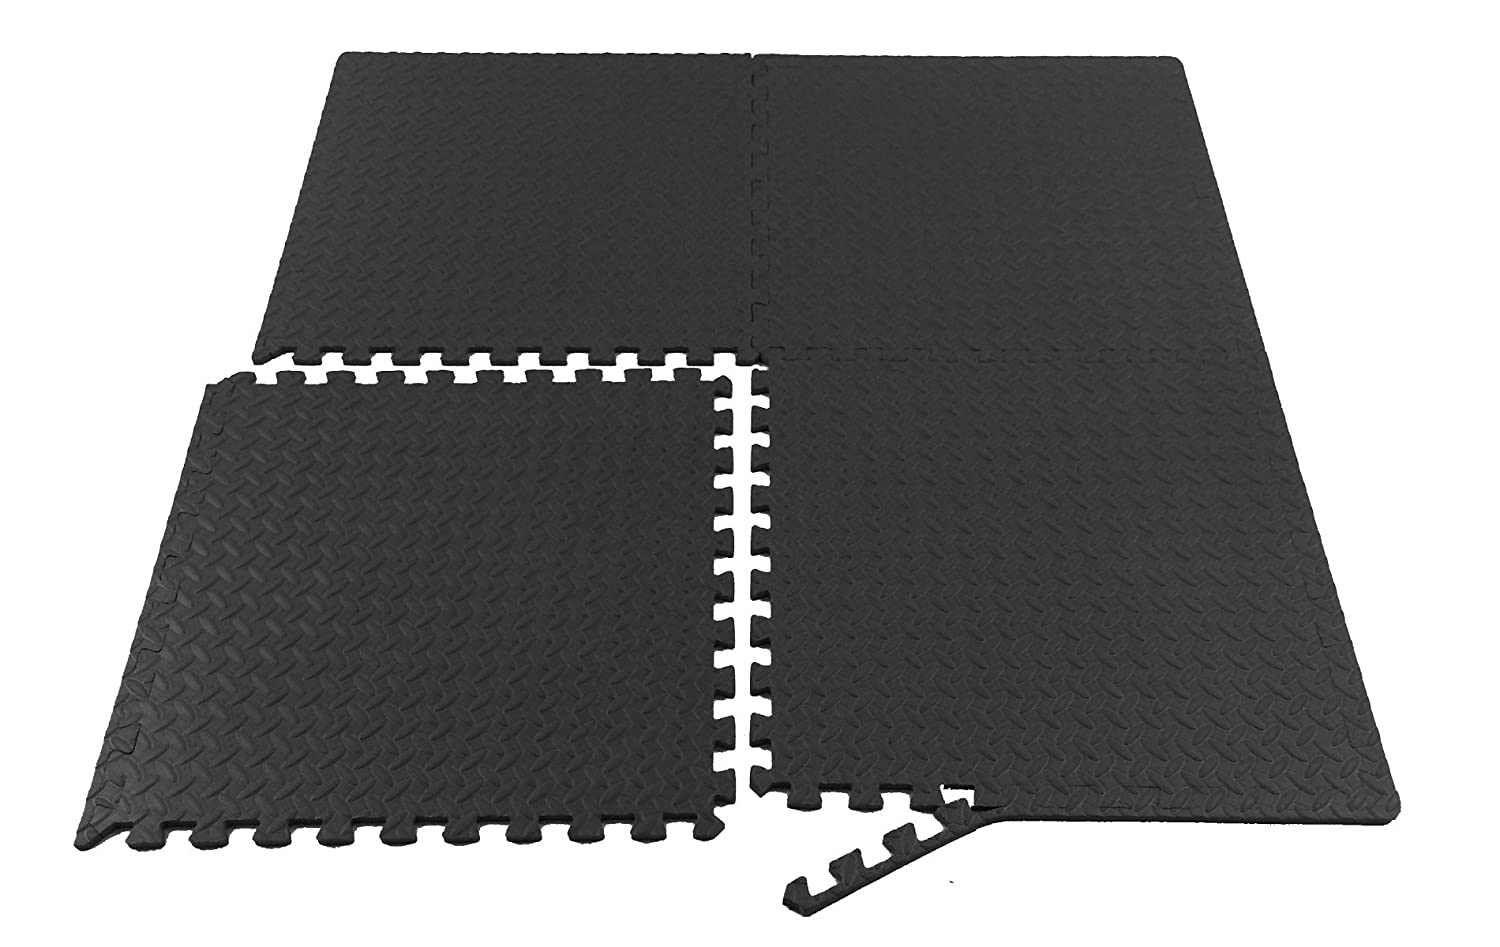 Amazing 1 Inch Ceramic Tiles Huge 2 X 12 Subway Tile Shaped 2 X 4 White Subway Tile 24 X 24 Ceramic Tile Old 3D Ceramic Wall Tiles White4 X 4 Ceramic Tiles Amazon.com: ProSource Fs 1908 Pzzl Puzzle Exercise Mat EVA Foam ..